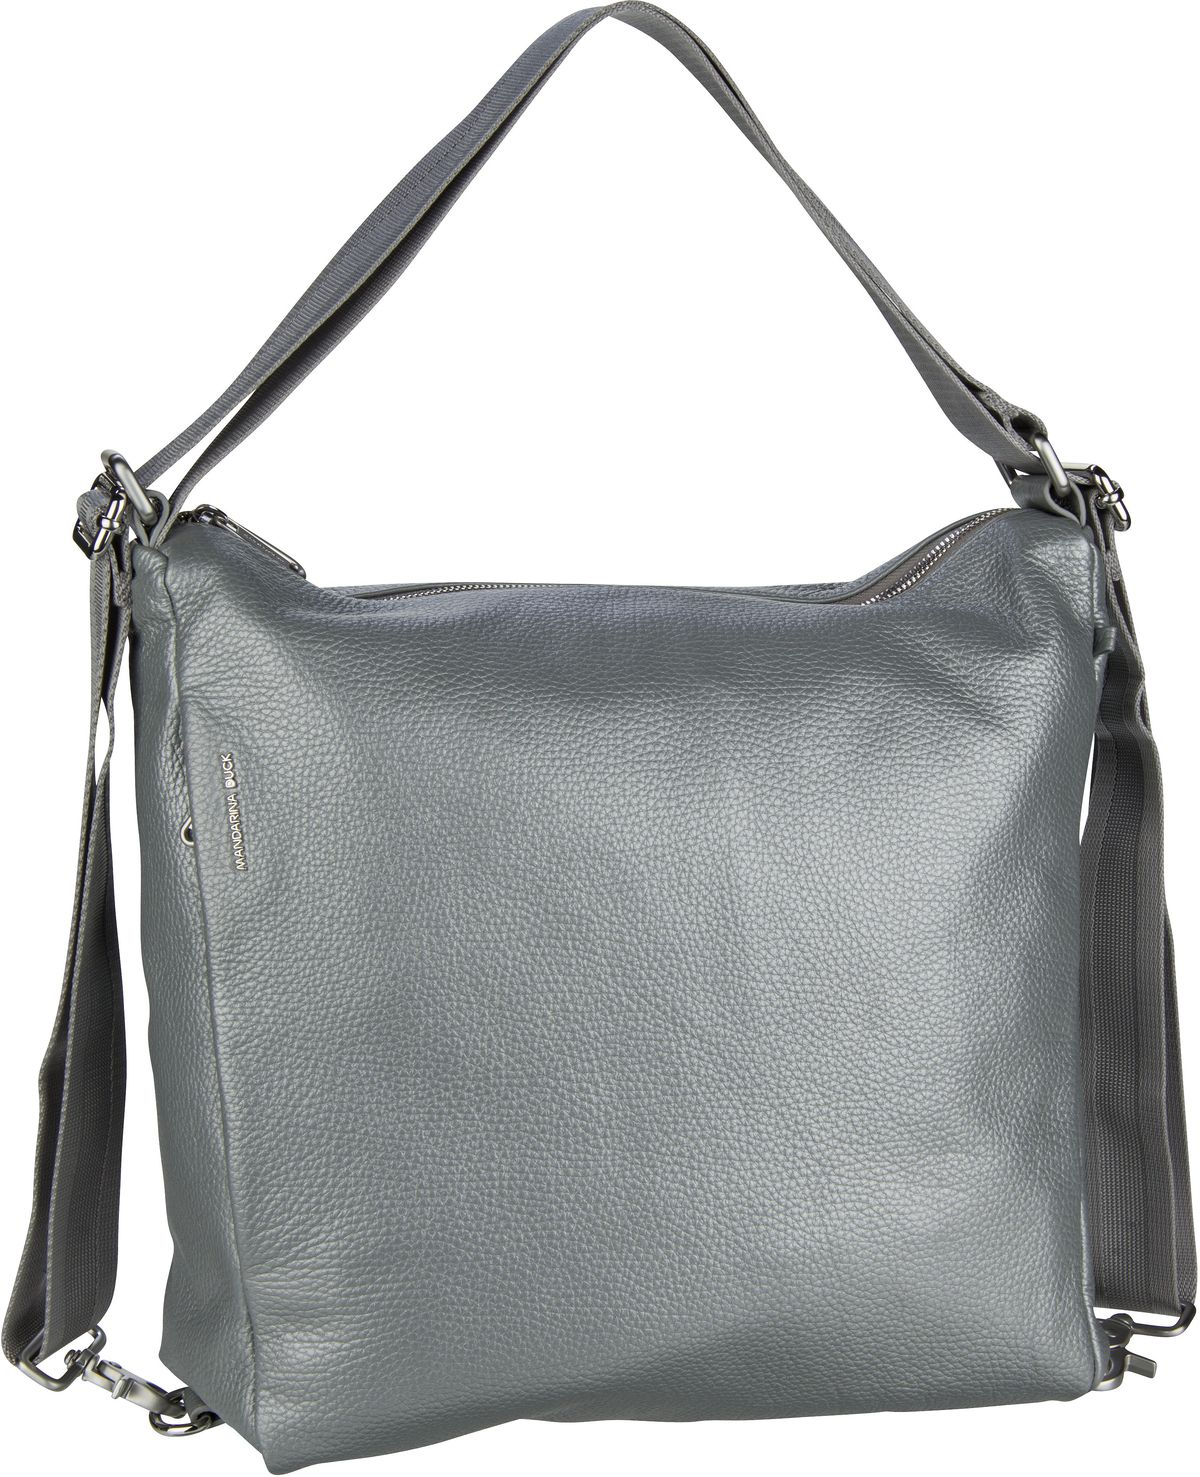 Handtasche Mellow Leather Lux Hobo ZLT72 Silver